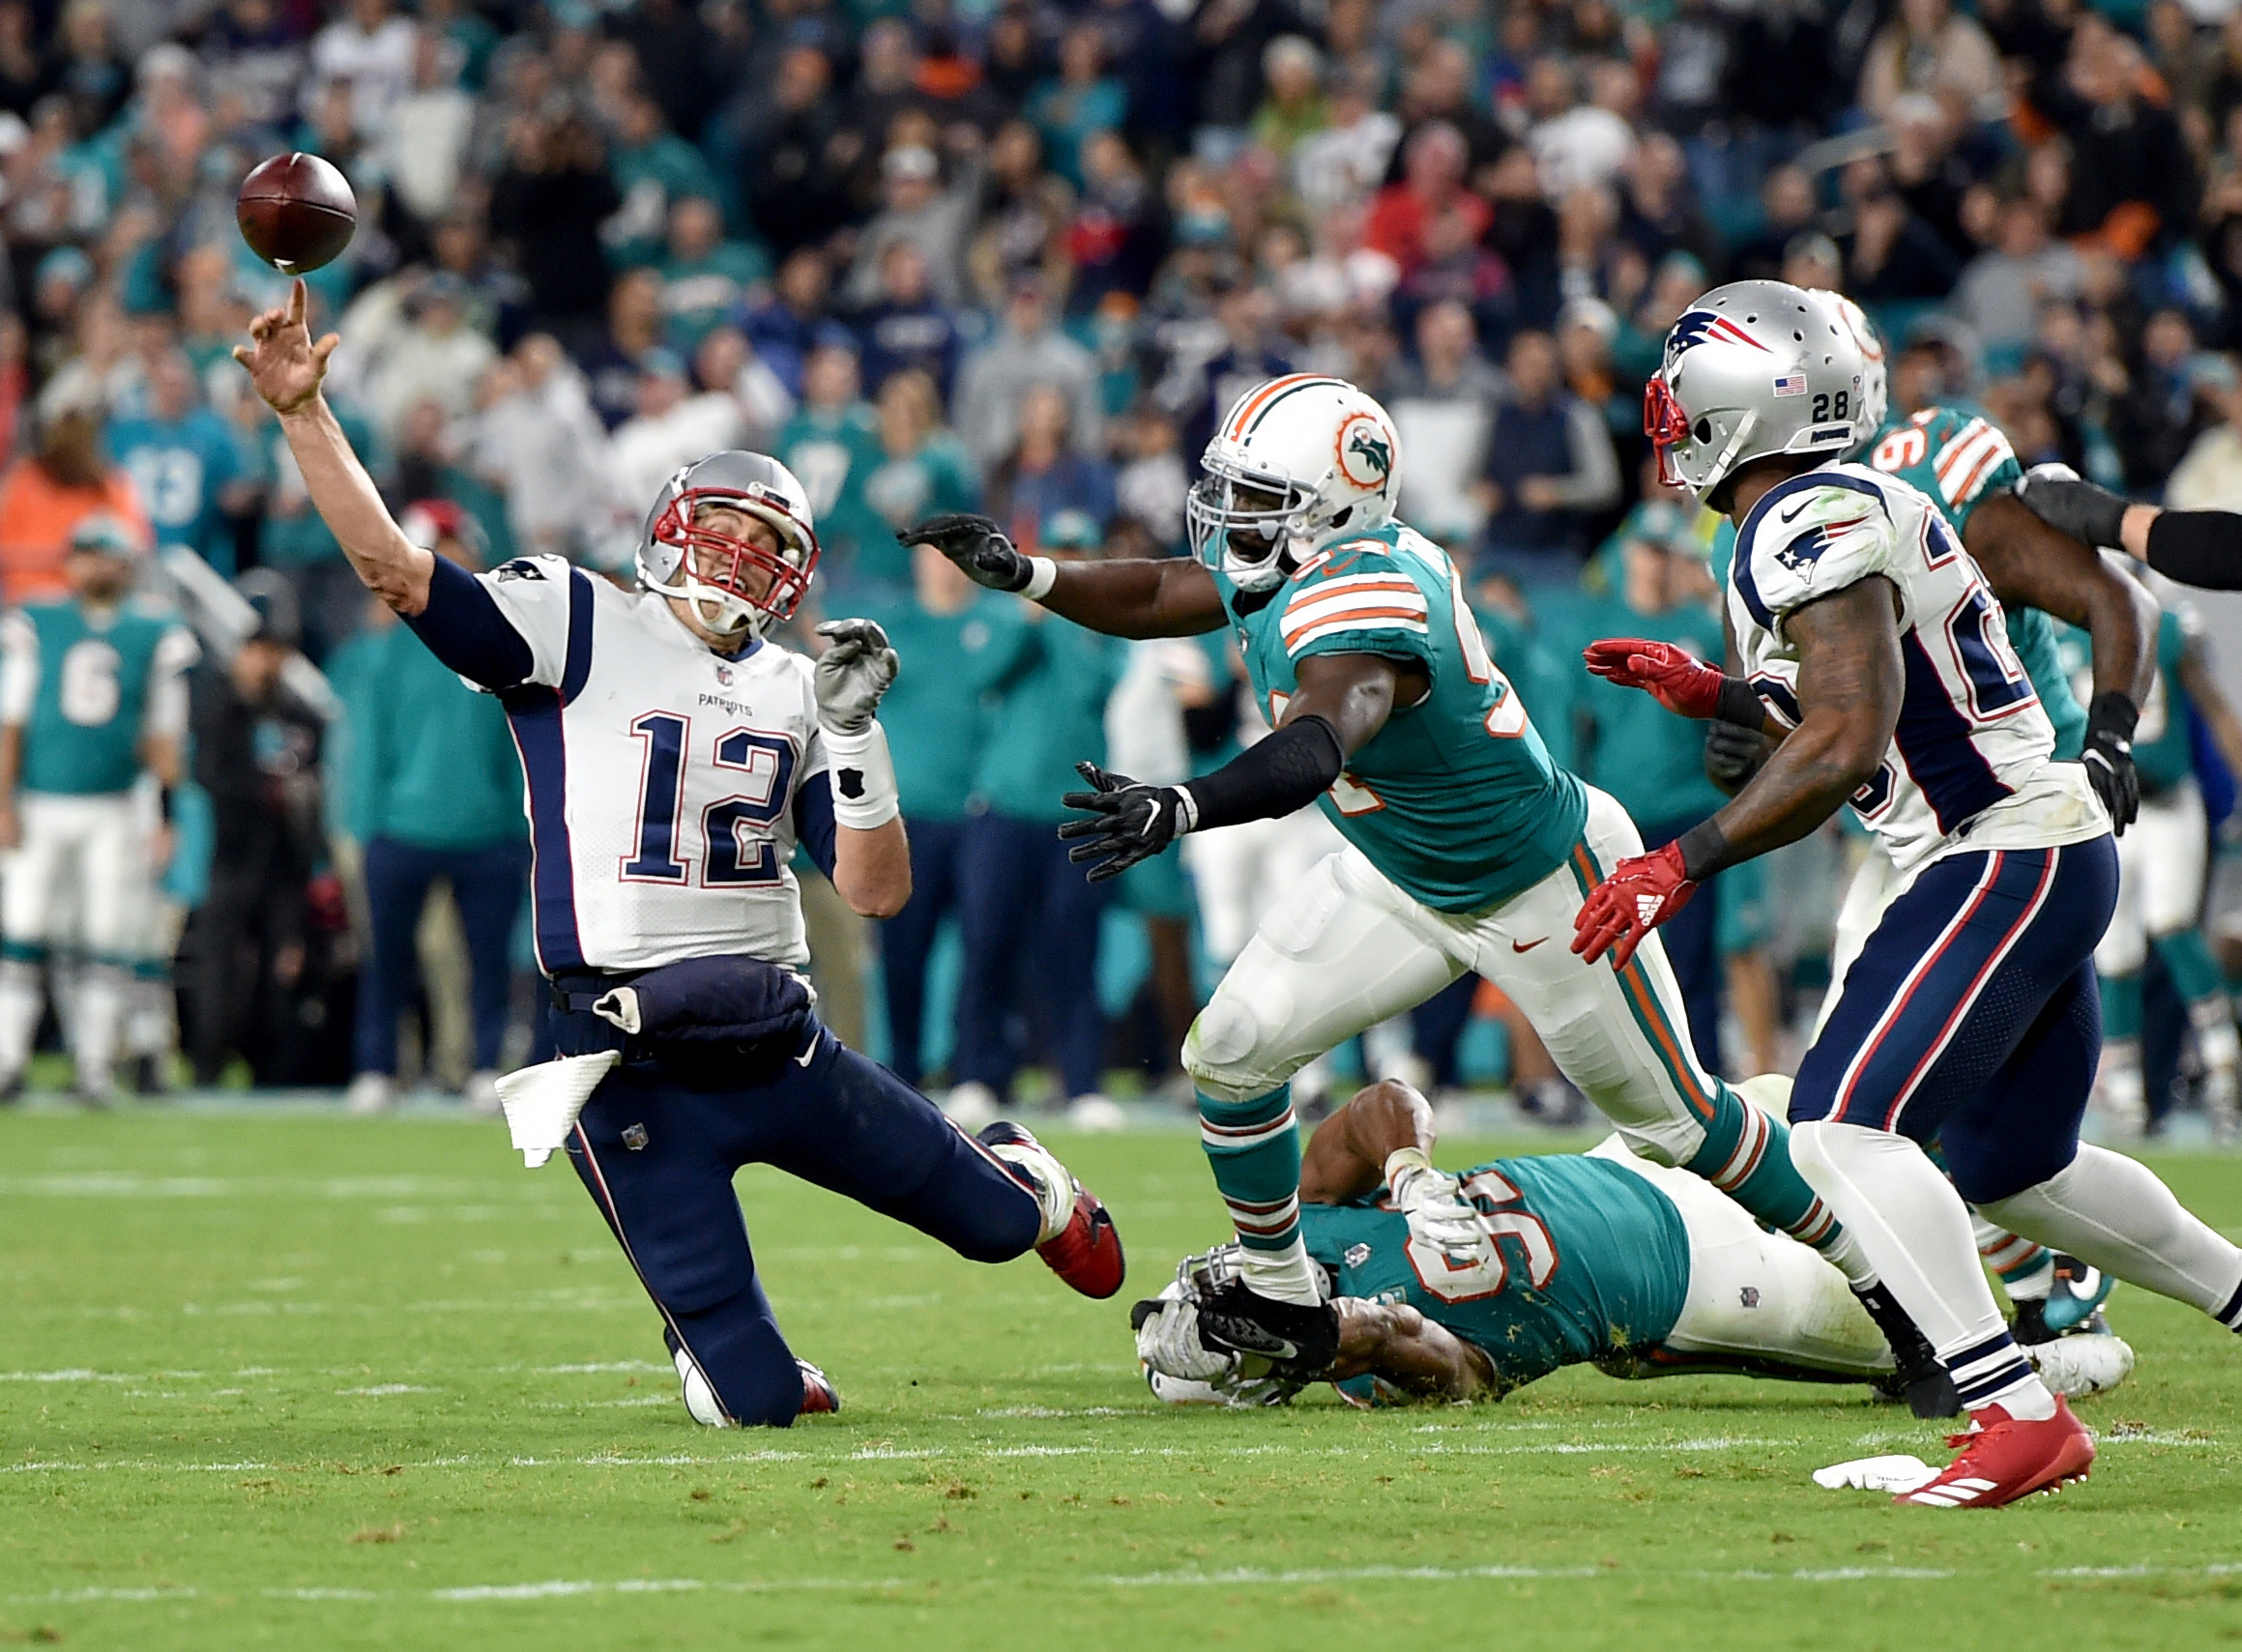 Dolphins Shock Pats With 27-20 Victory With Help From Howard